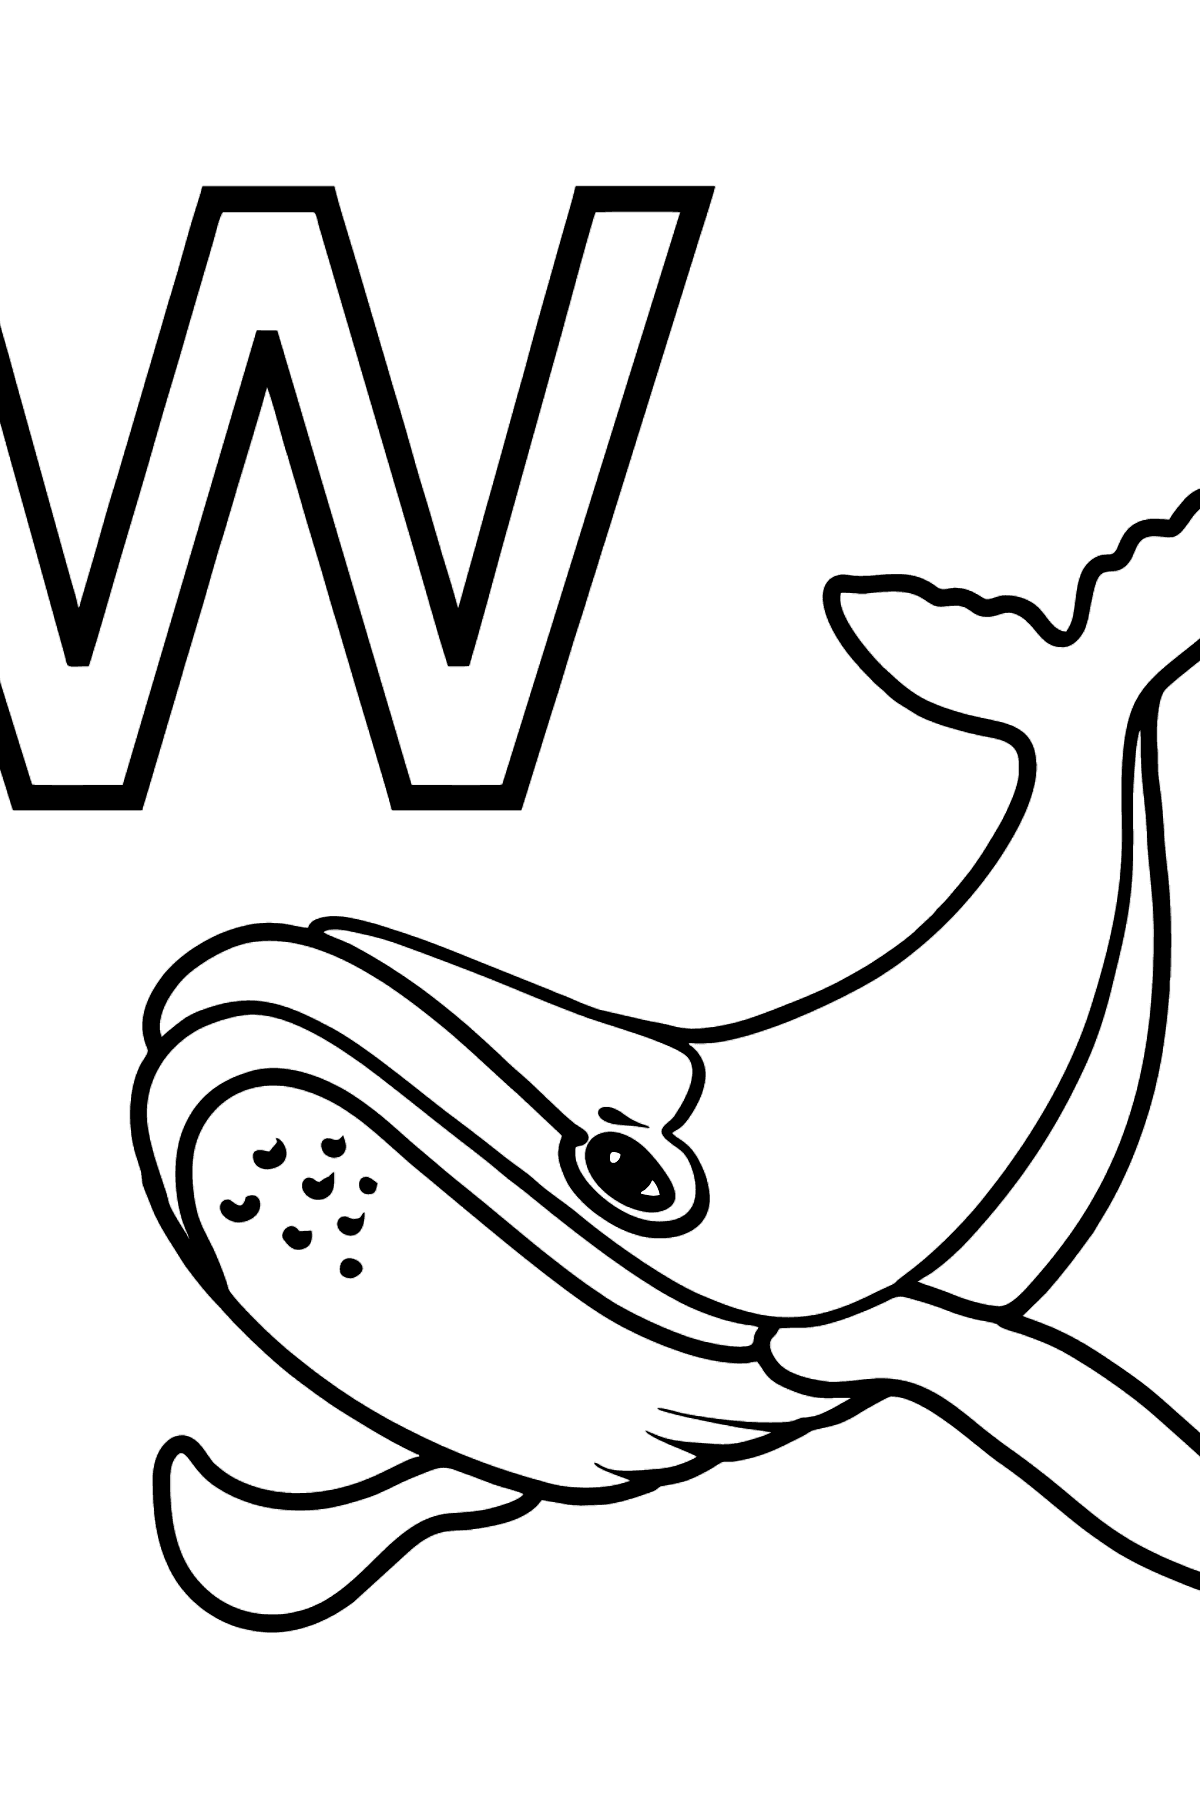 English Letter W coloring pages - WHALE - Coloring Pages for Kids